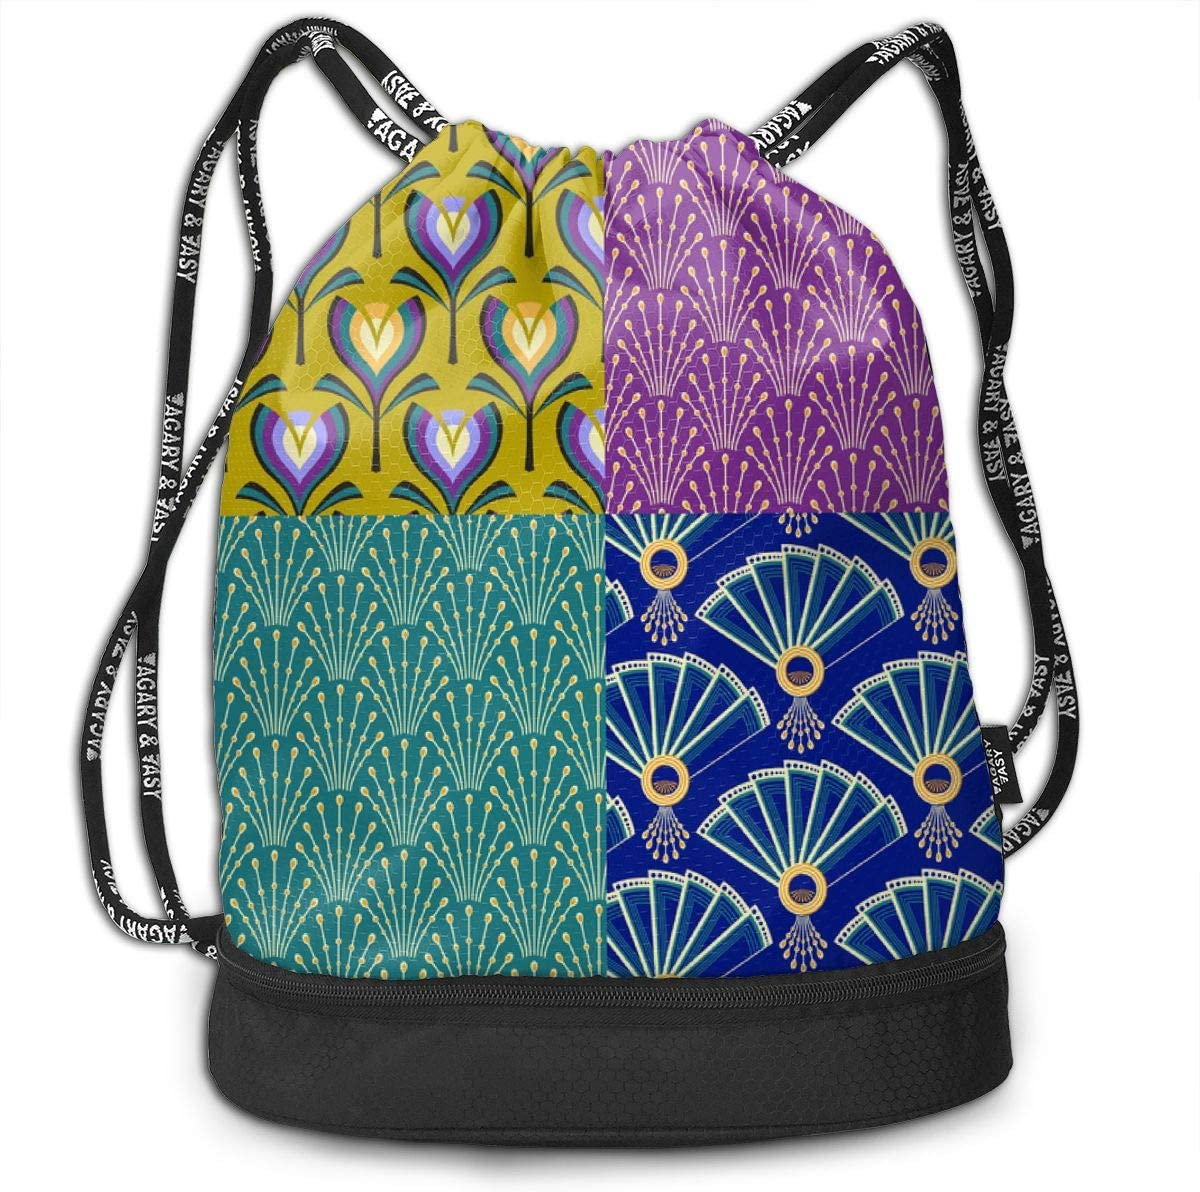 Deco Fans Flowers Bead Selection Drawstring Backpack Sports Athletic Gym Cinch Sack String Storage Bags for Hiking Travel Beach